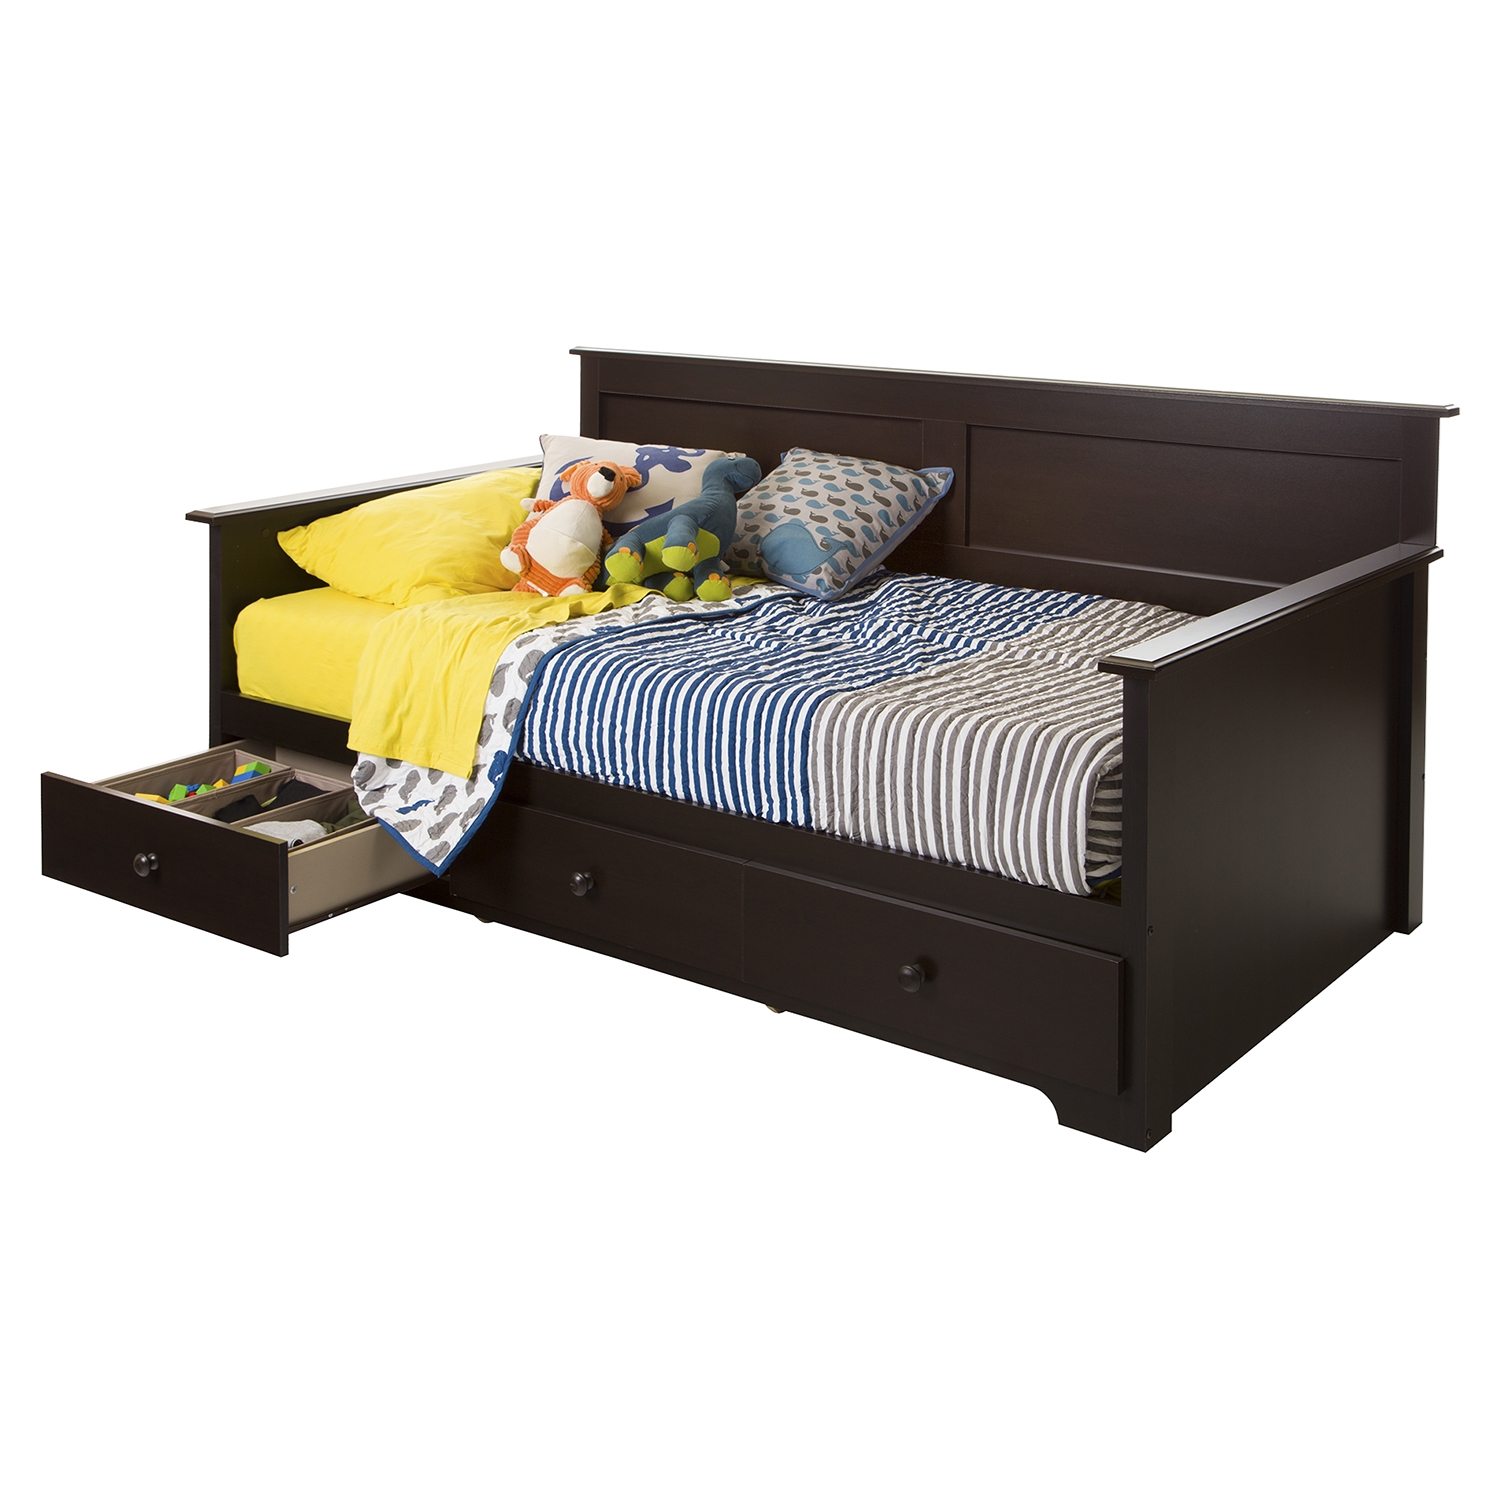 Summer Breeze Twin Daybed - 3 Drawers, Chocolate - SS-10079